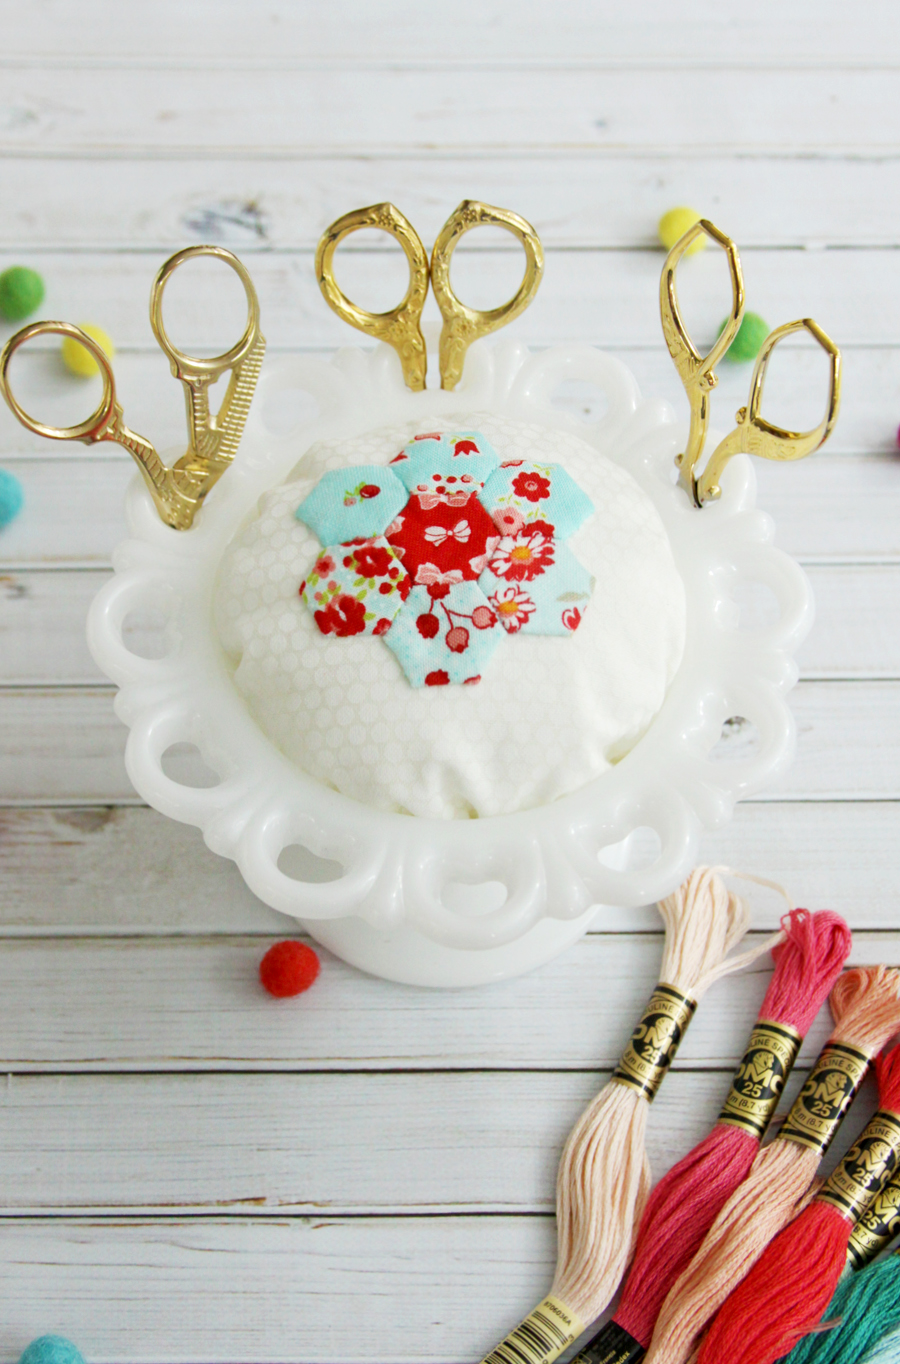 diy vintage milk glass pincushion